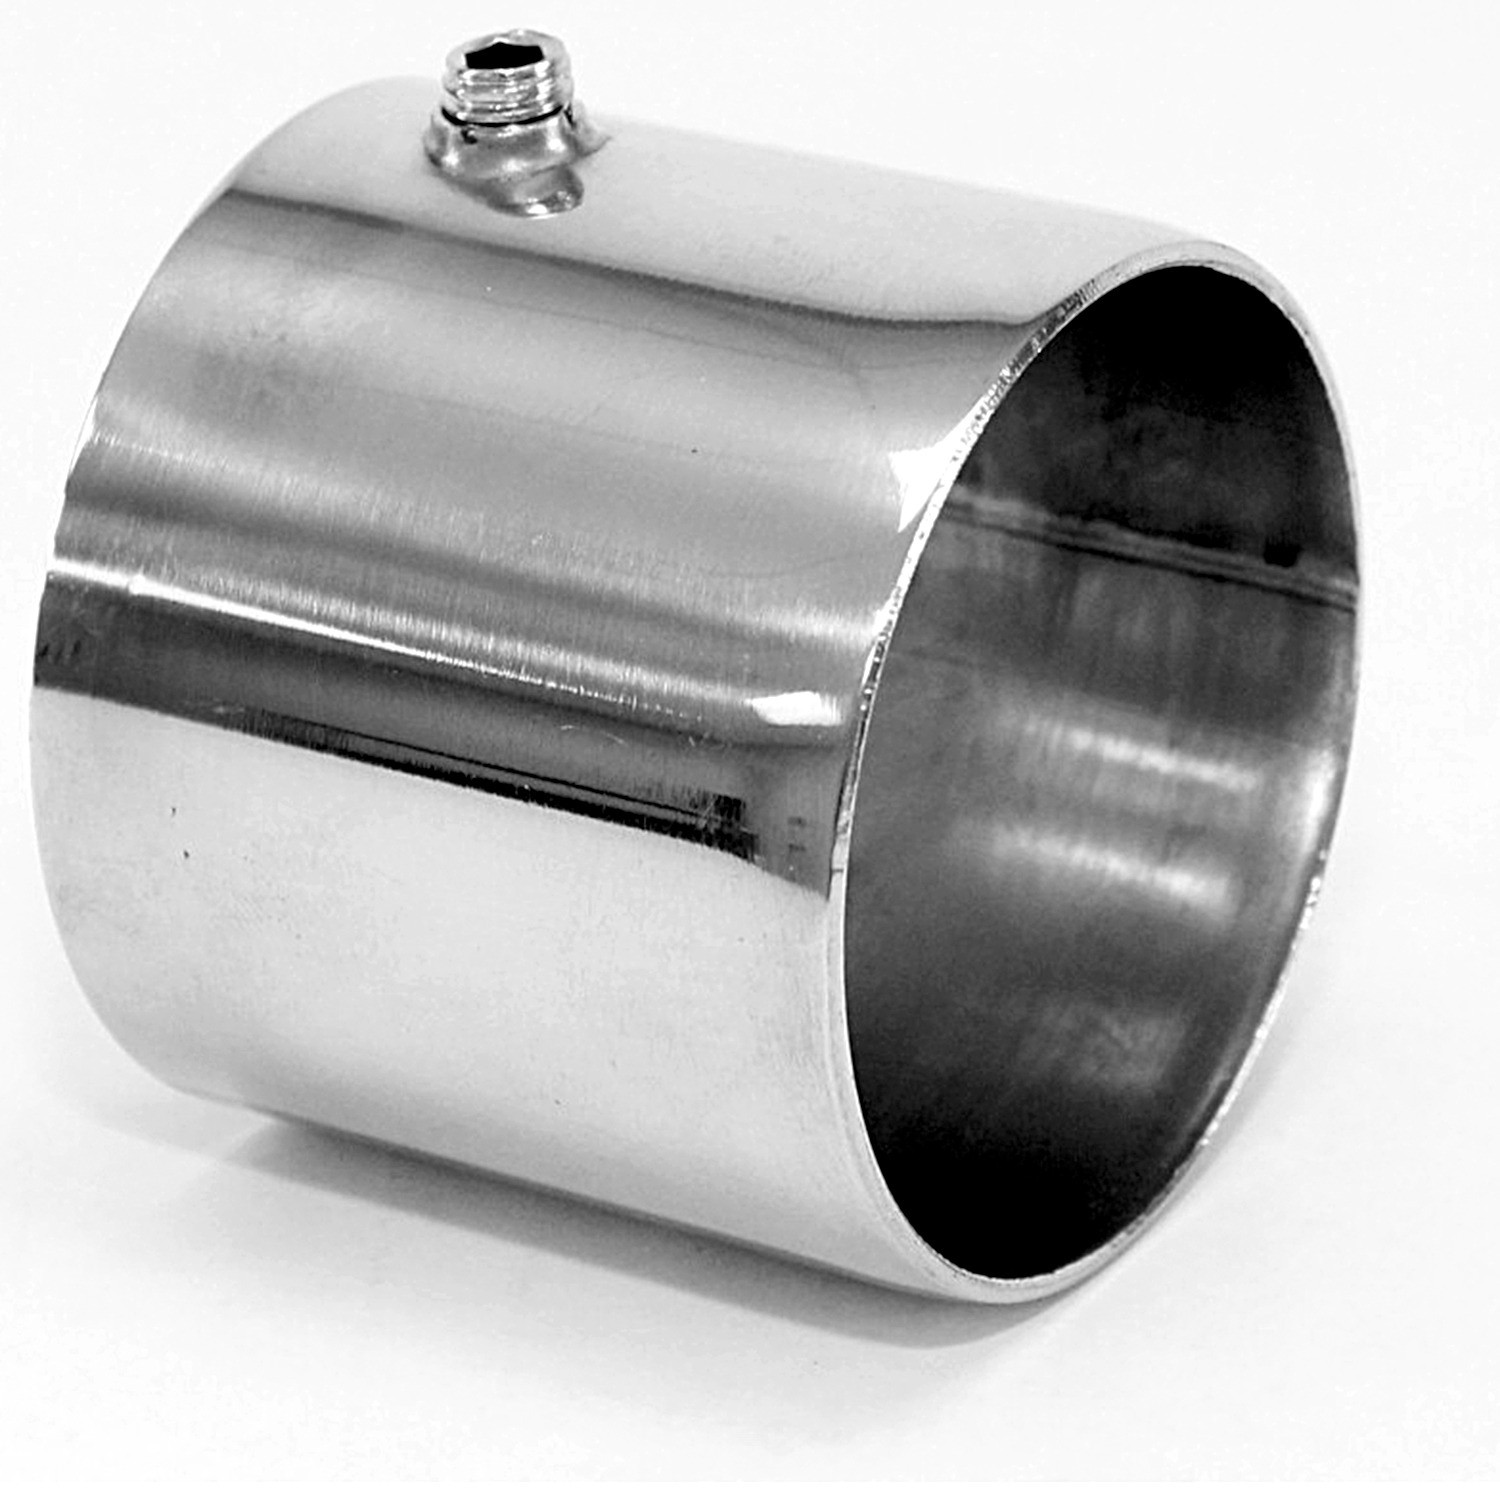 AP EXHAUST W/FEDERAL CONVERTER - Exhaust Tail Pipe Tip - APF ST1255S